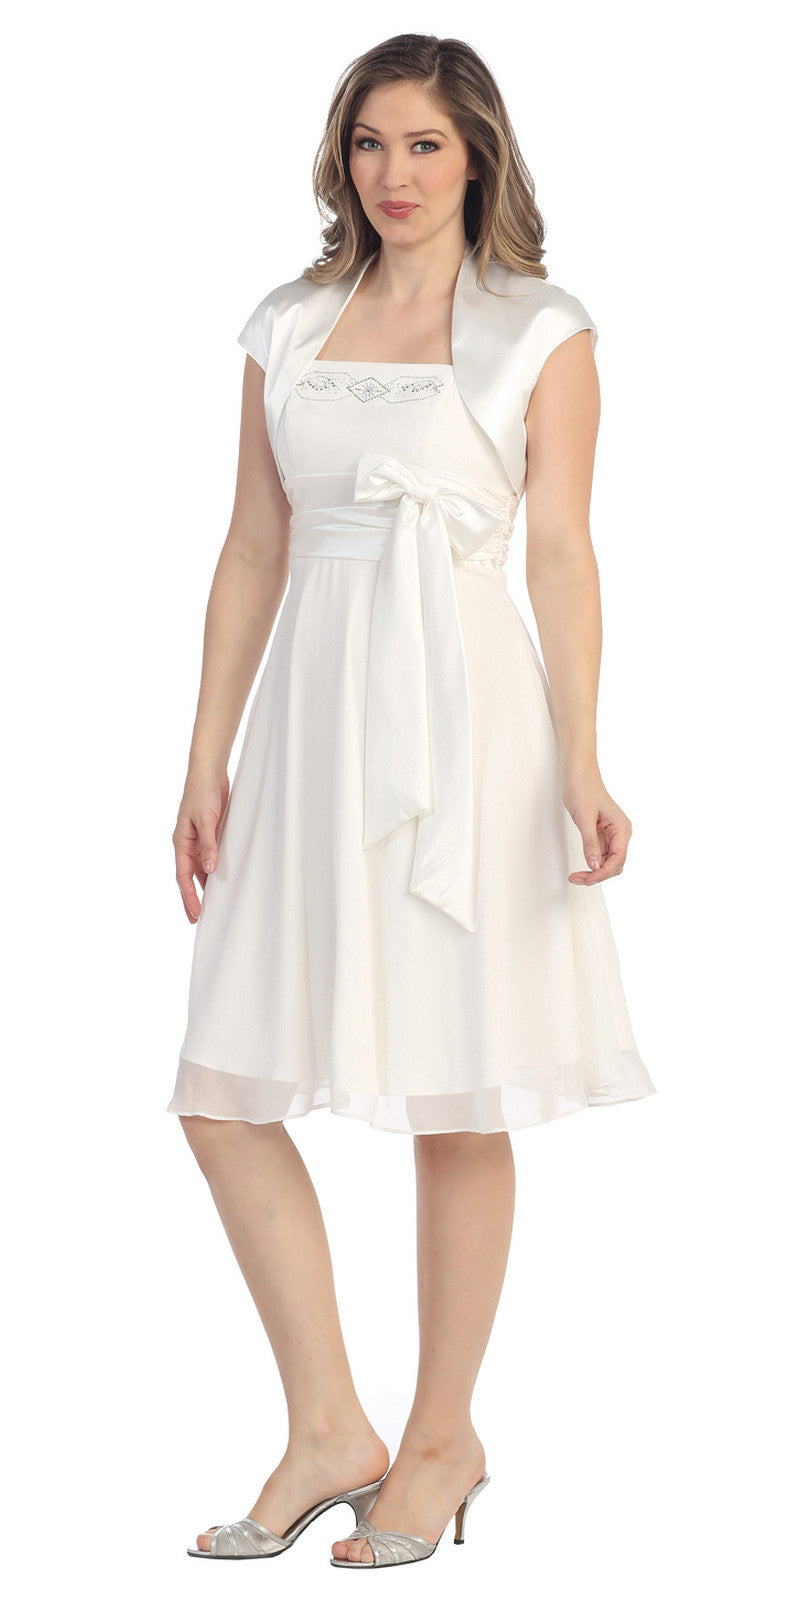 Short A Line White Chiffon Dress Includes Bolero Jacket Knee Length